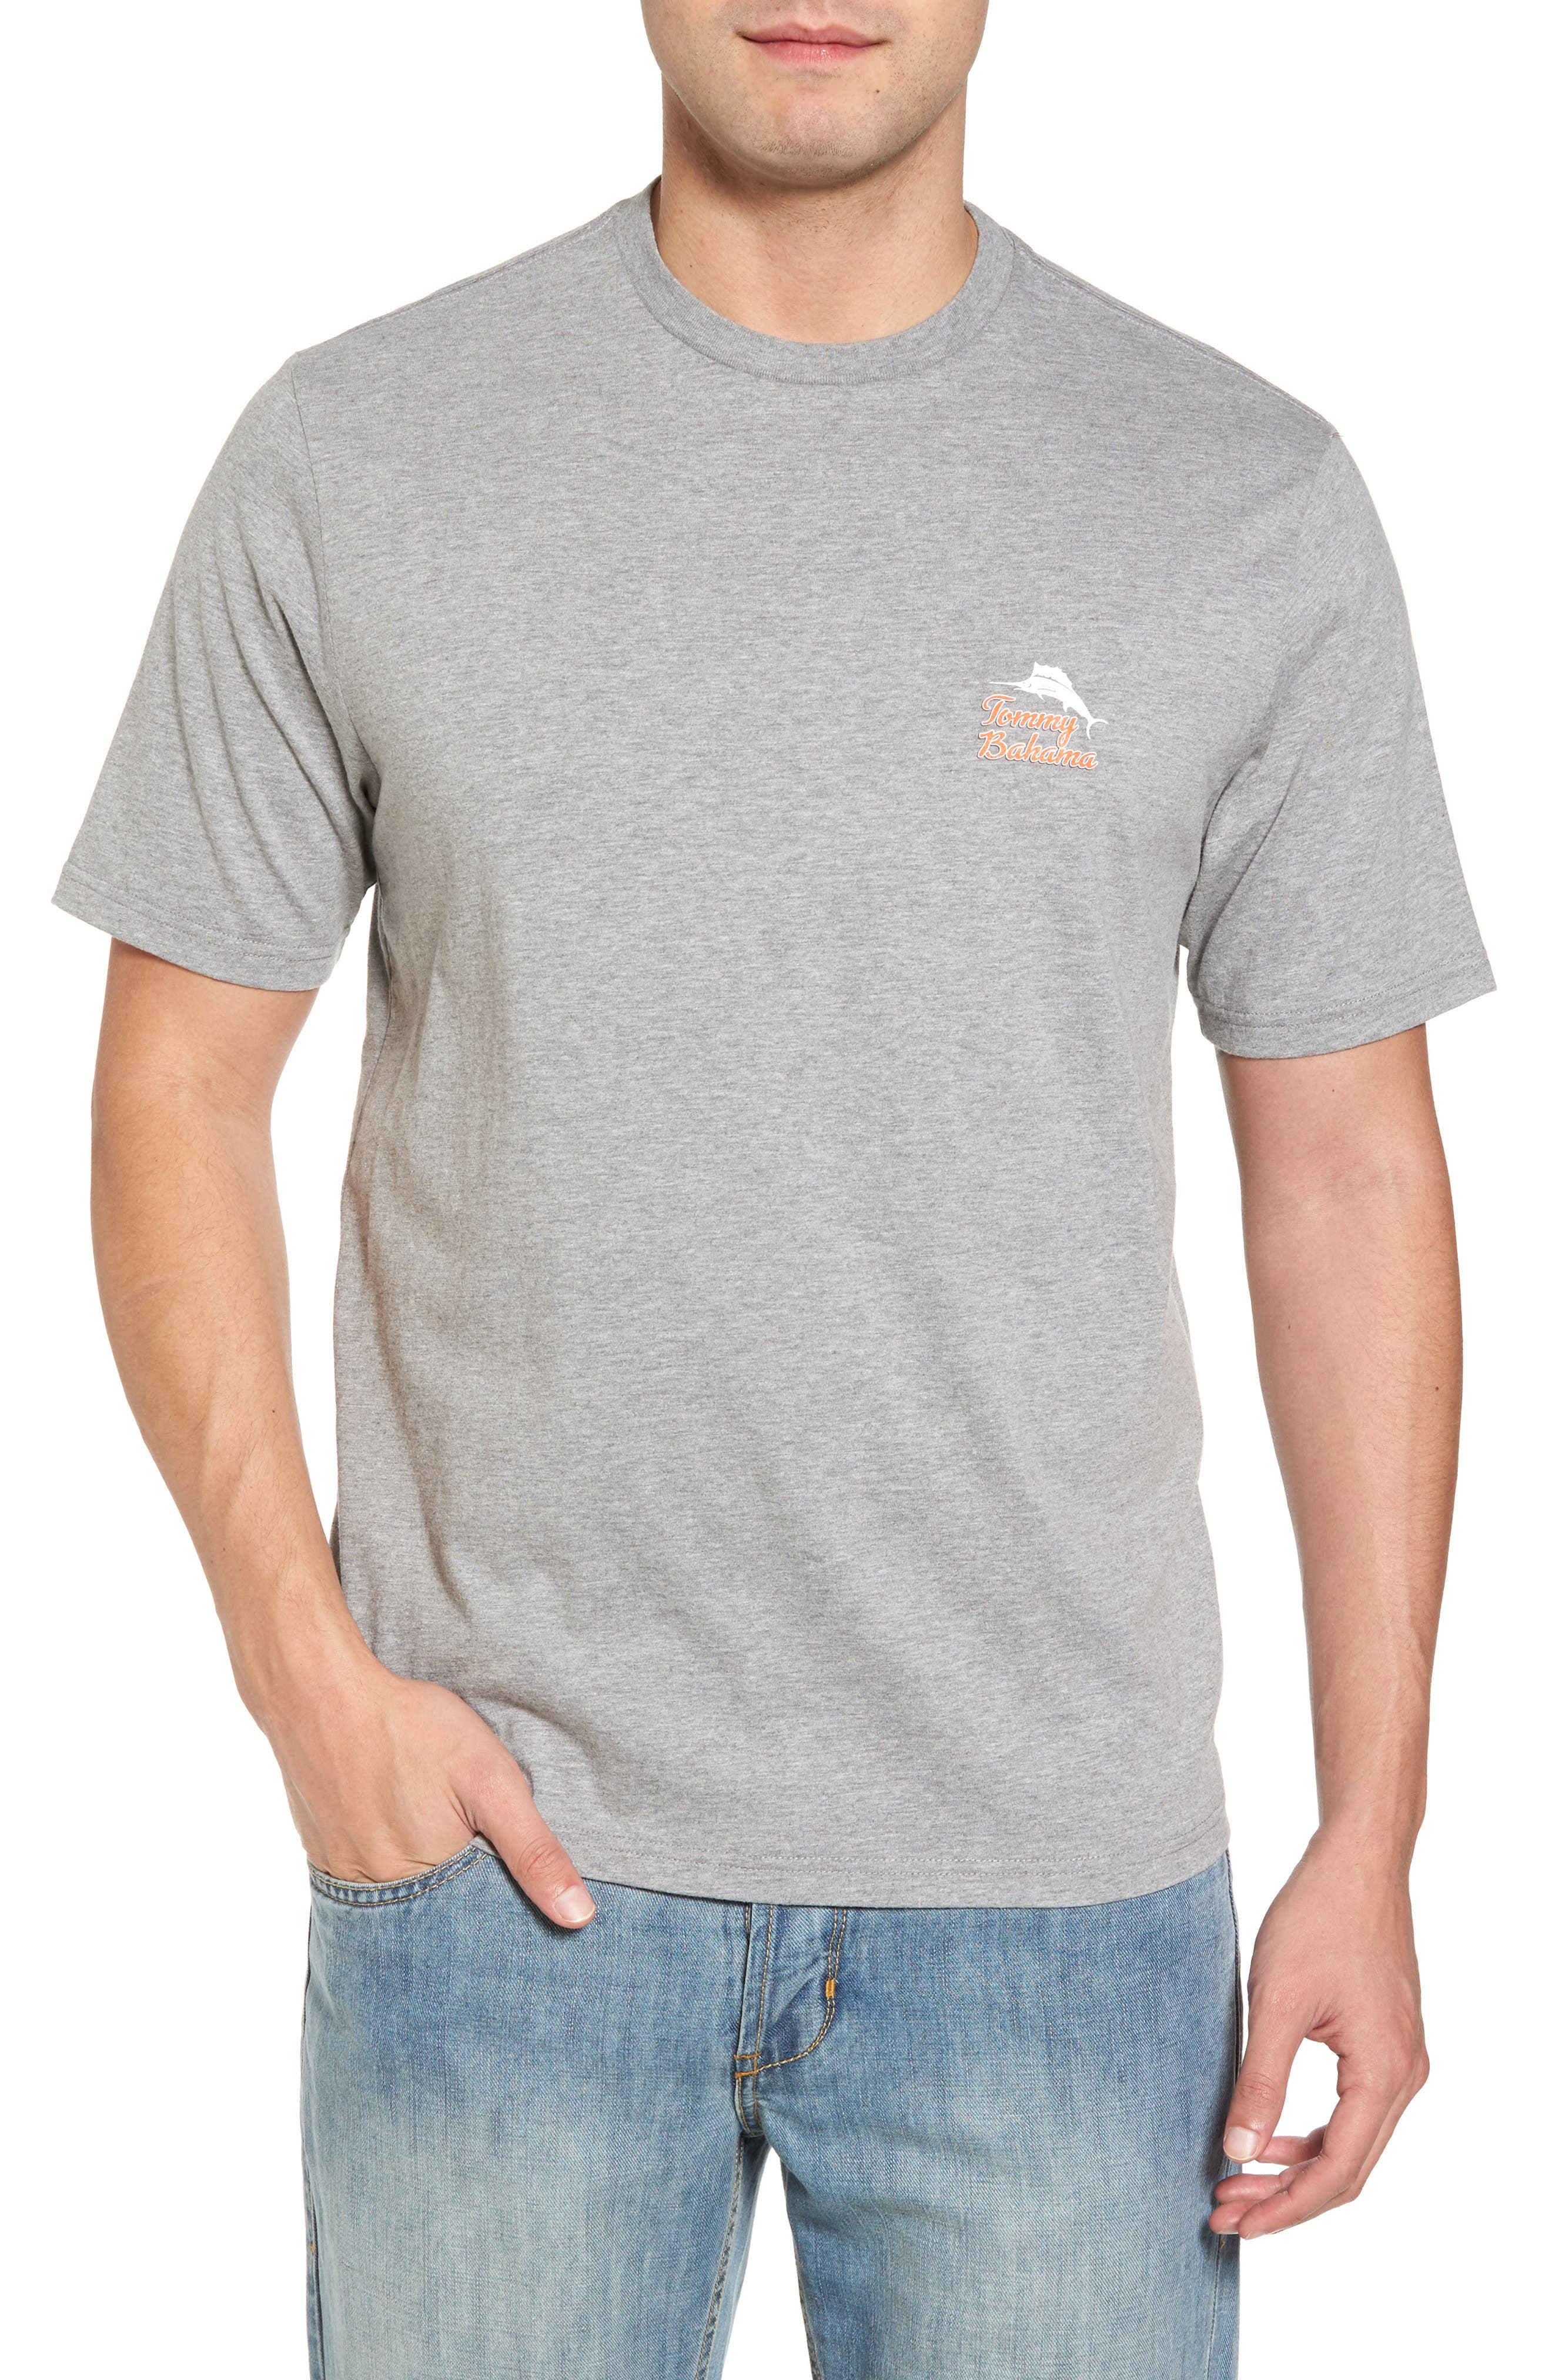 Morning Anchor Graphic T-Shirt,                         Main,                         color, Grey Heather